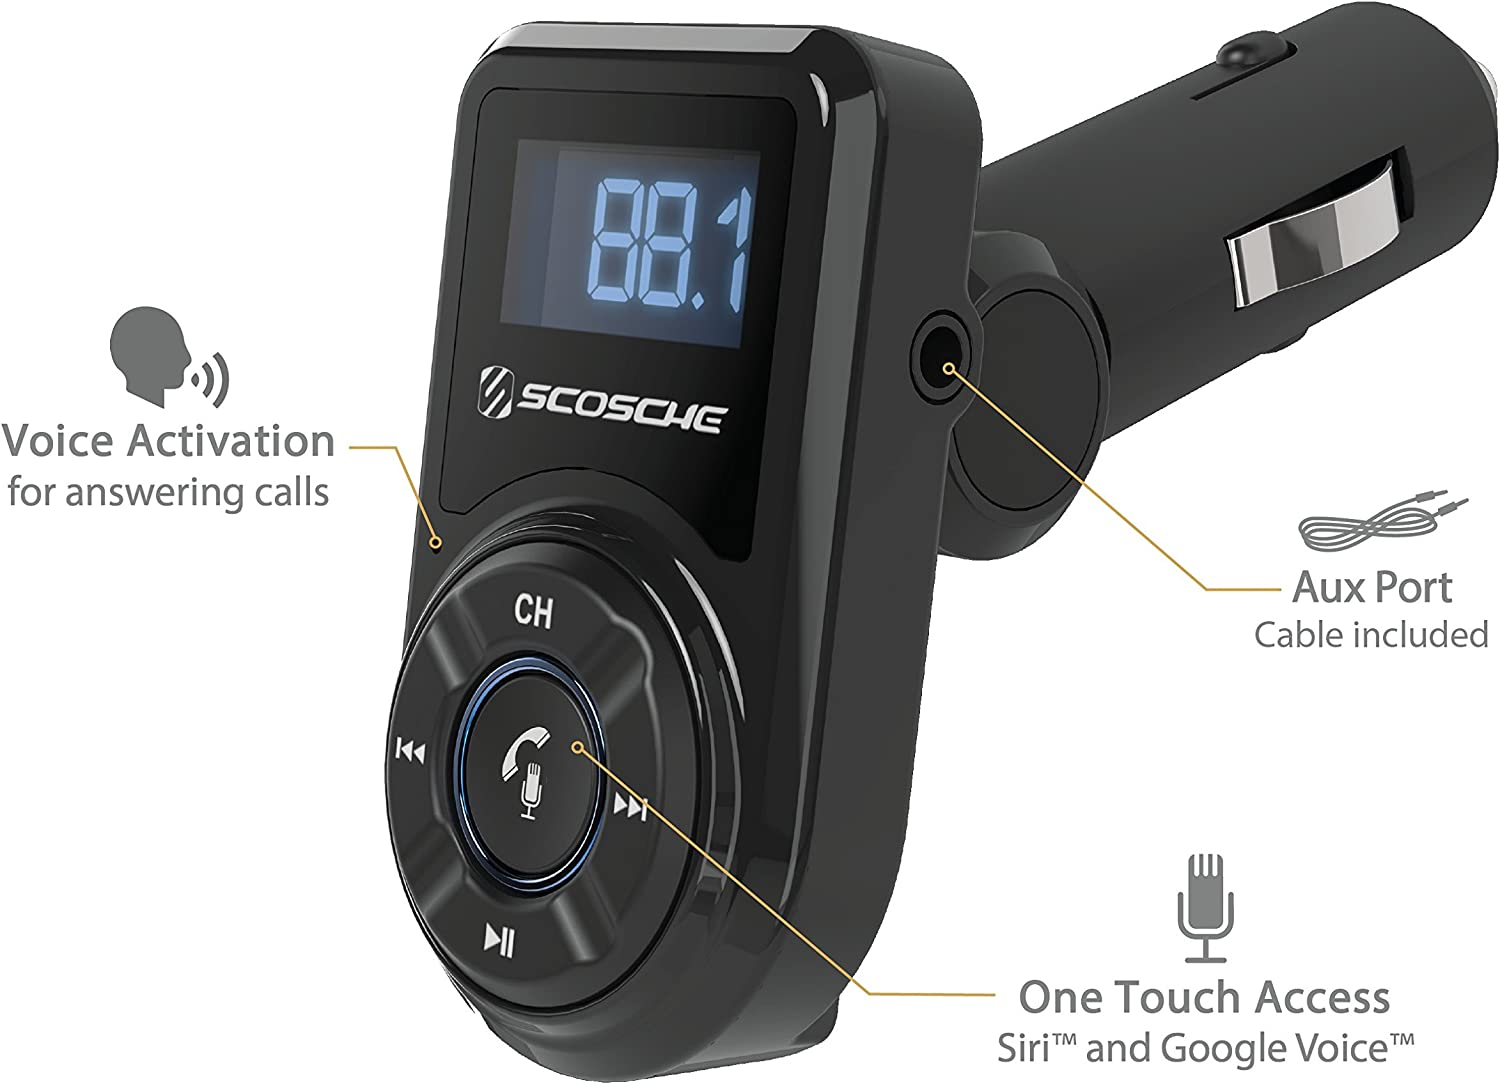 Scosche Btfm3 Bluetooth Fm Transmitter With Usb Port And Remote Control For Mobile Devices Smartphone Car Truck Car Elektronik